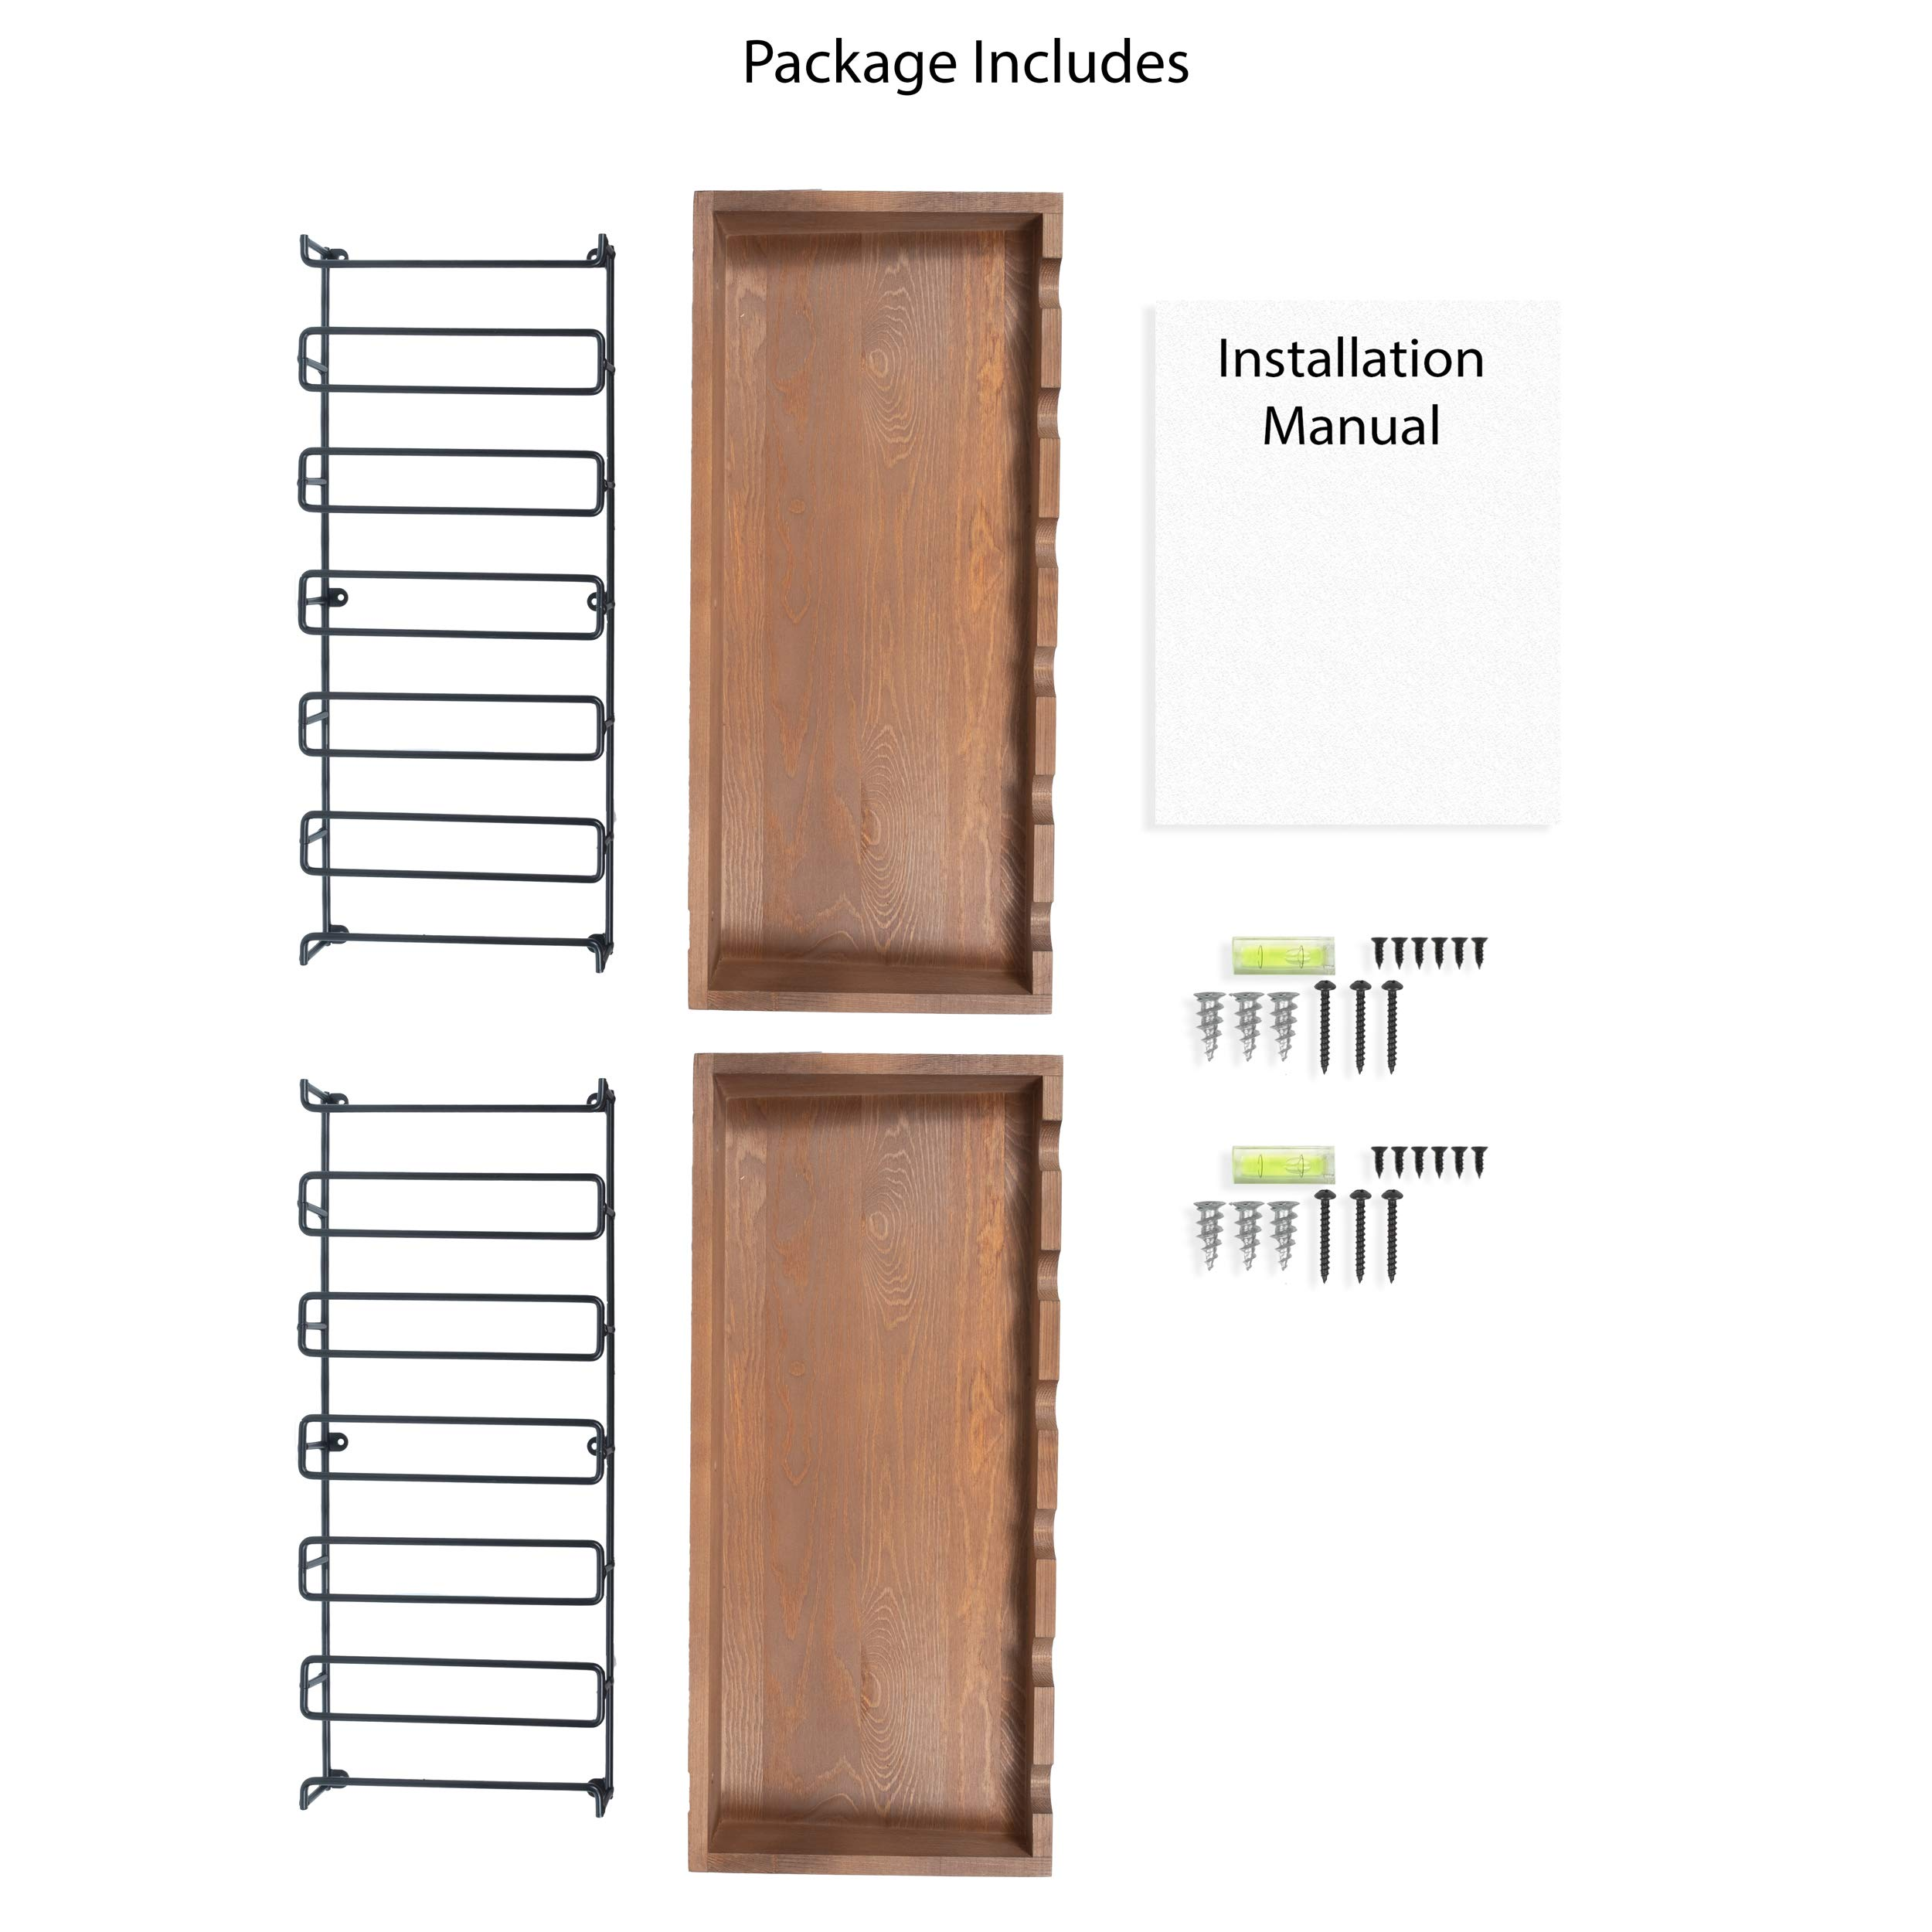 brightmaison Wall Mounted Walnut Stained Wood Wine Stem Rack for 6 Bottles and Stemware Glass Storage Holder Organizer Display (Set of 2) by brightmaison (Image #5)